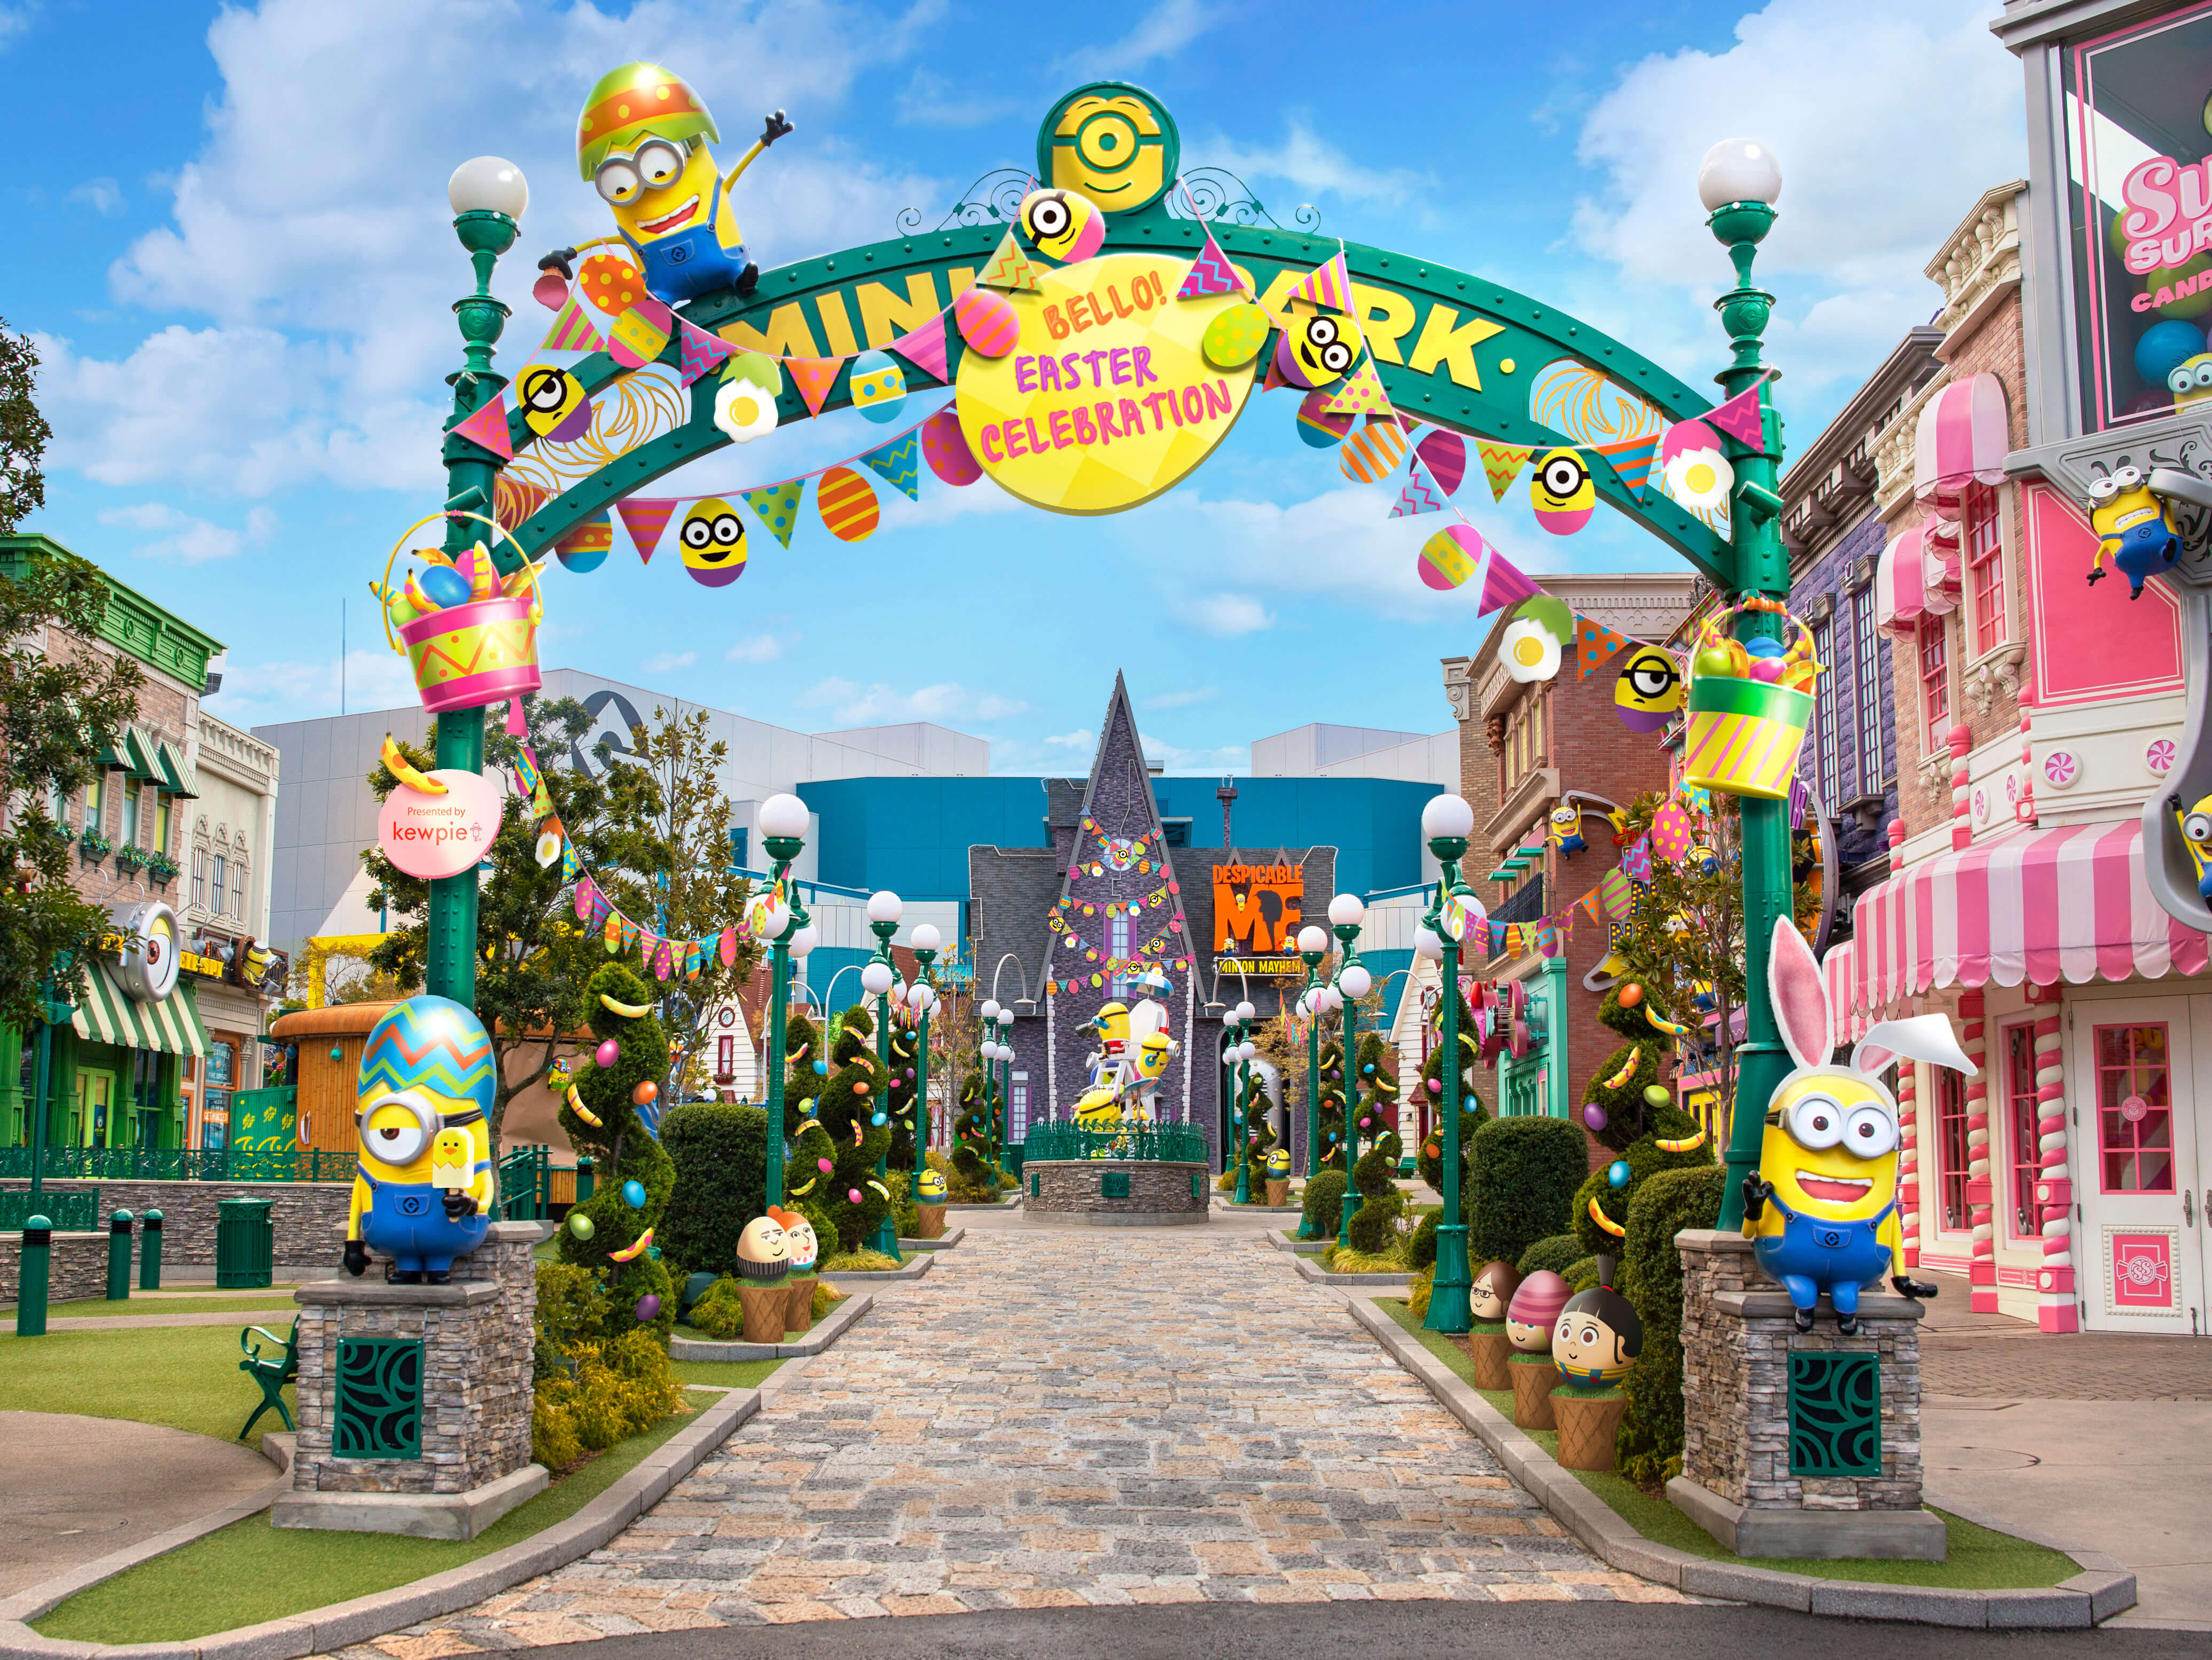 Garden Centre: Universal Studios Japan's Easter Celebration To Take Place Across 2 Areas